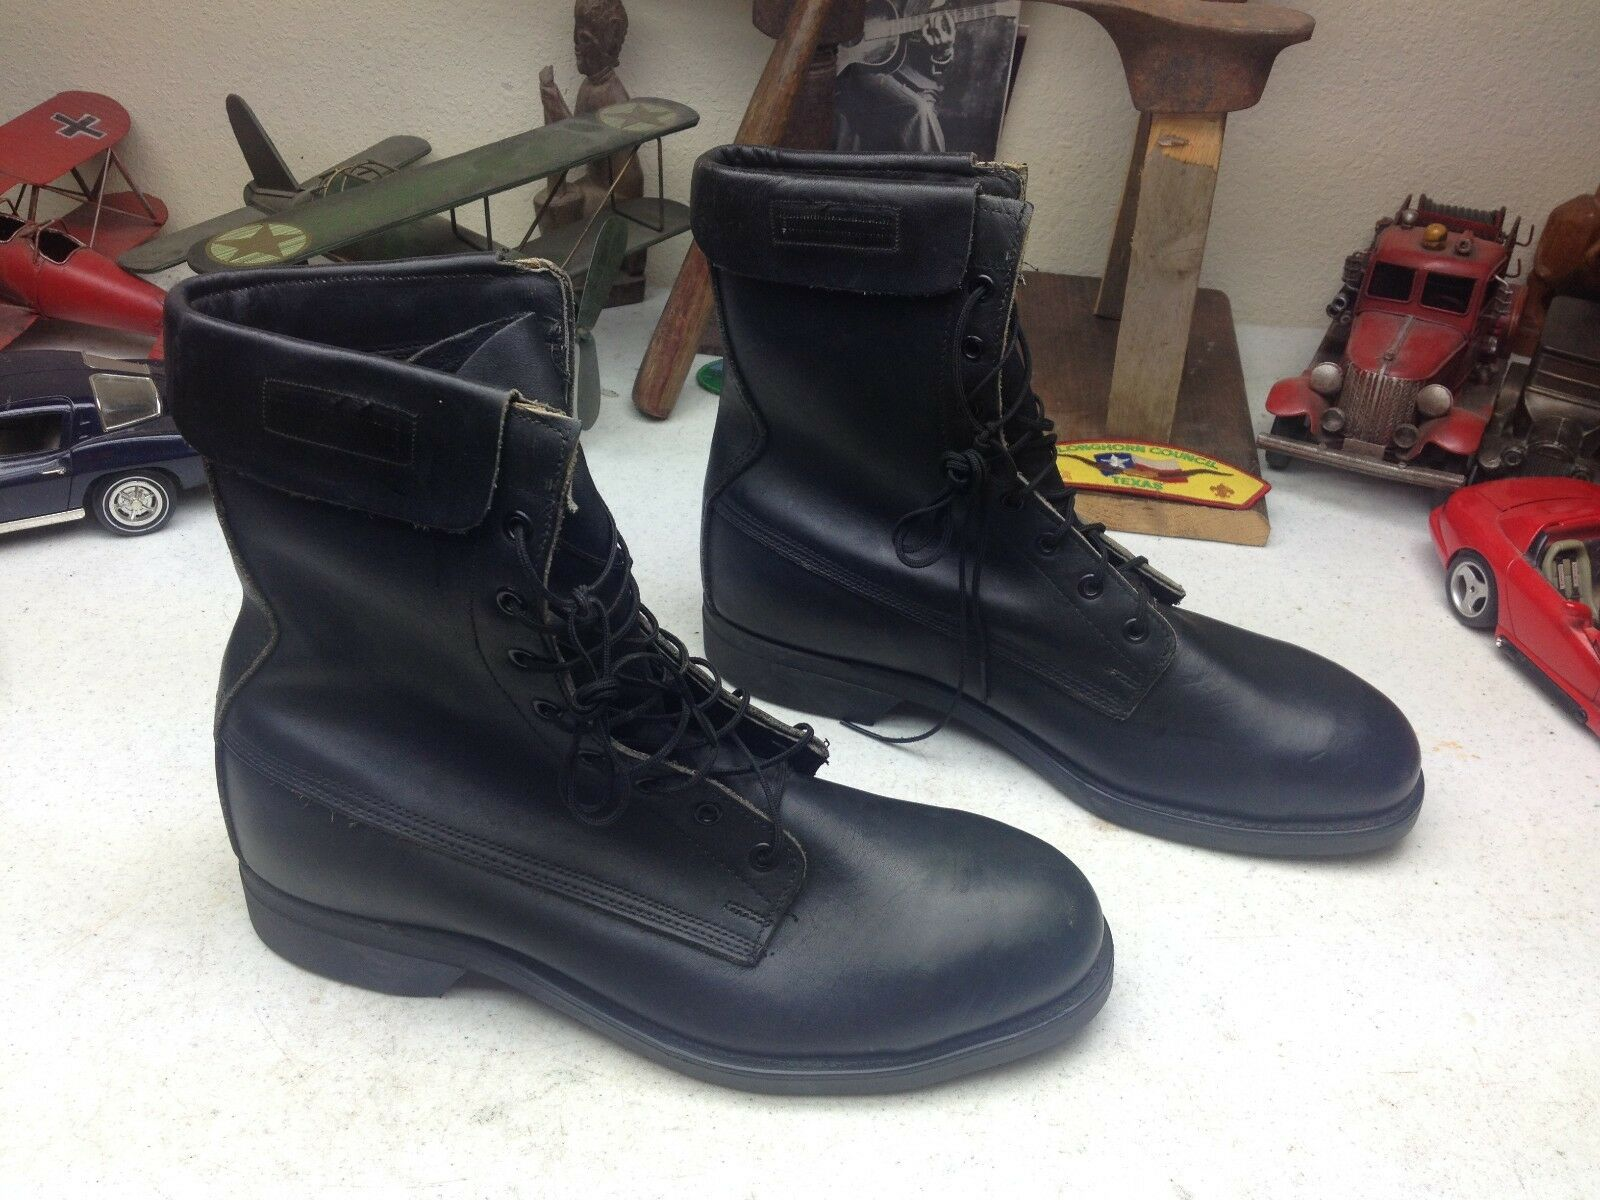 VTG 1985 STEEL TOE MILITARY USA schwarz LACE LACE LACE UP PARATROOPER JUMP BOSS Stiefel 9.5 D 45f8d1